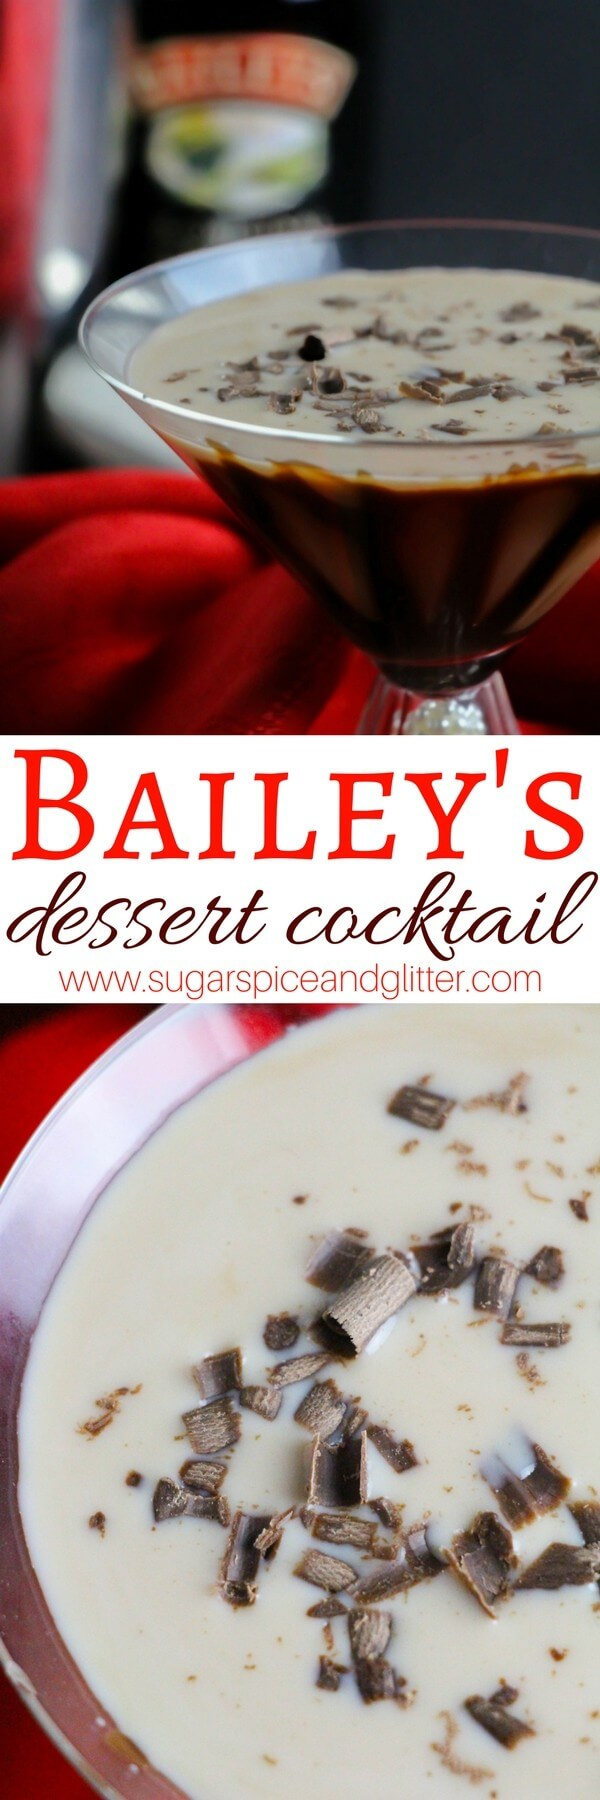 An easy Bailey's cocktail with chocolate liqueur, chocolate syrup and chocolate shavings for when you deserve a bit of indulgence